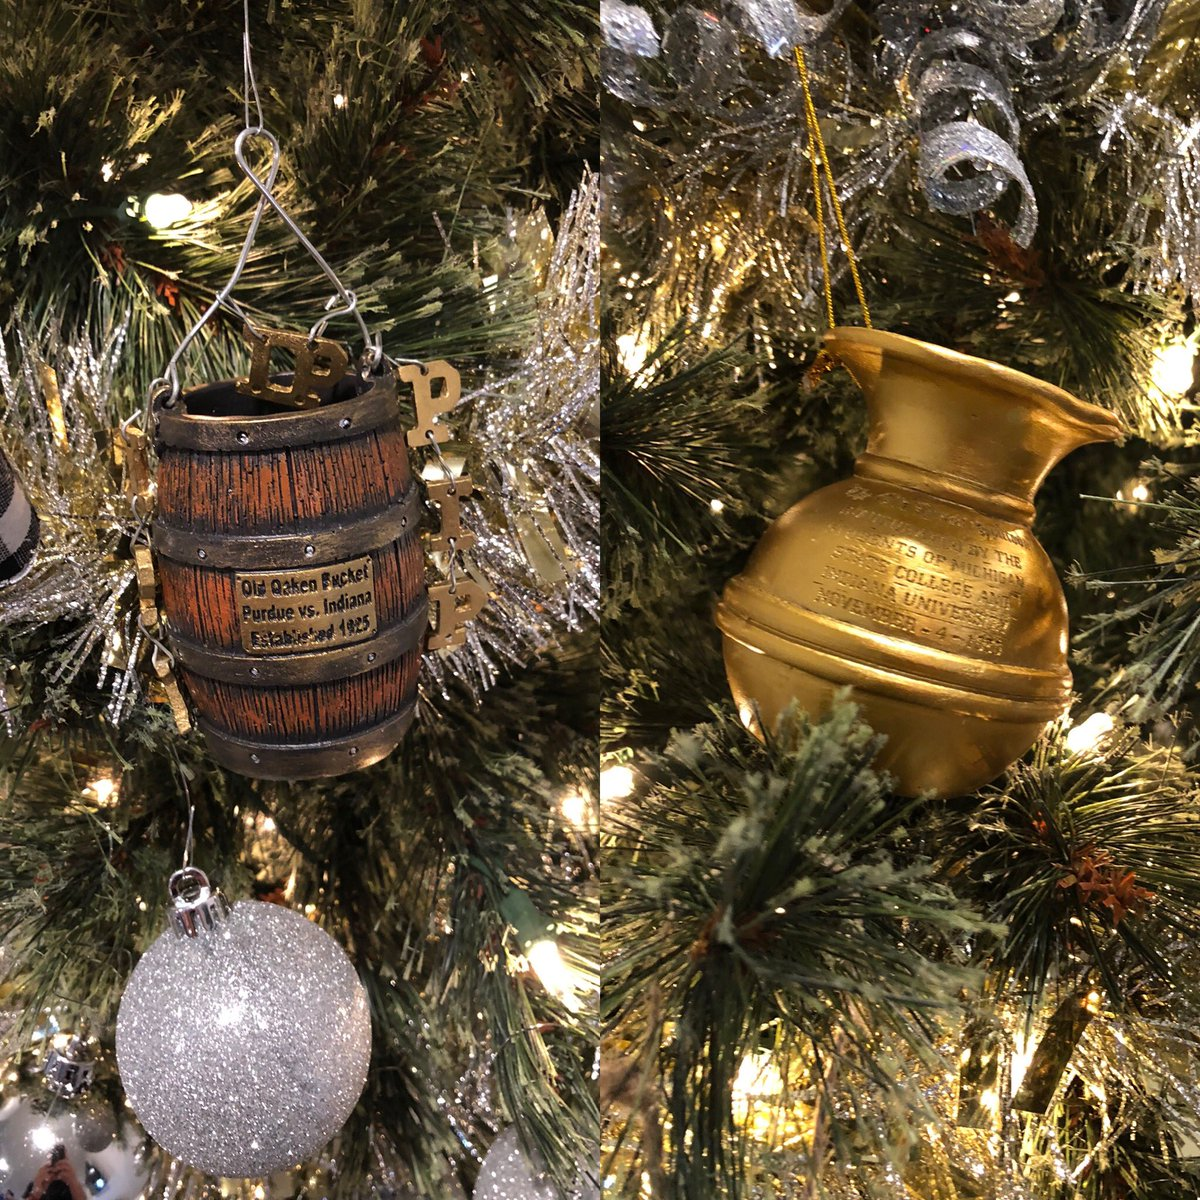 Look at these beauties I've added to the Christmas tree this year! Every year we keep the rival trophies, they will stay on the tree, so let's keep these on every year! #OldOakenBucket #OldBrassSpittoon #iufb @IndianaFootball 🔴⚪️🏈🎄